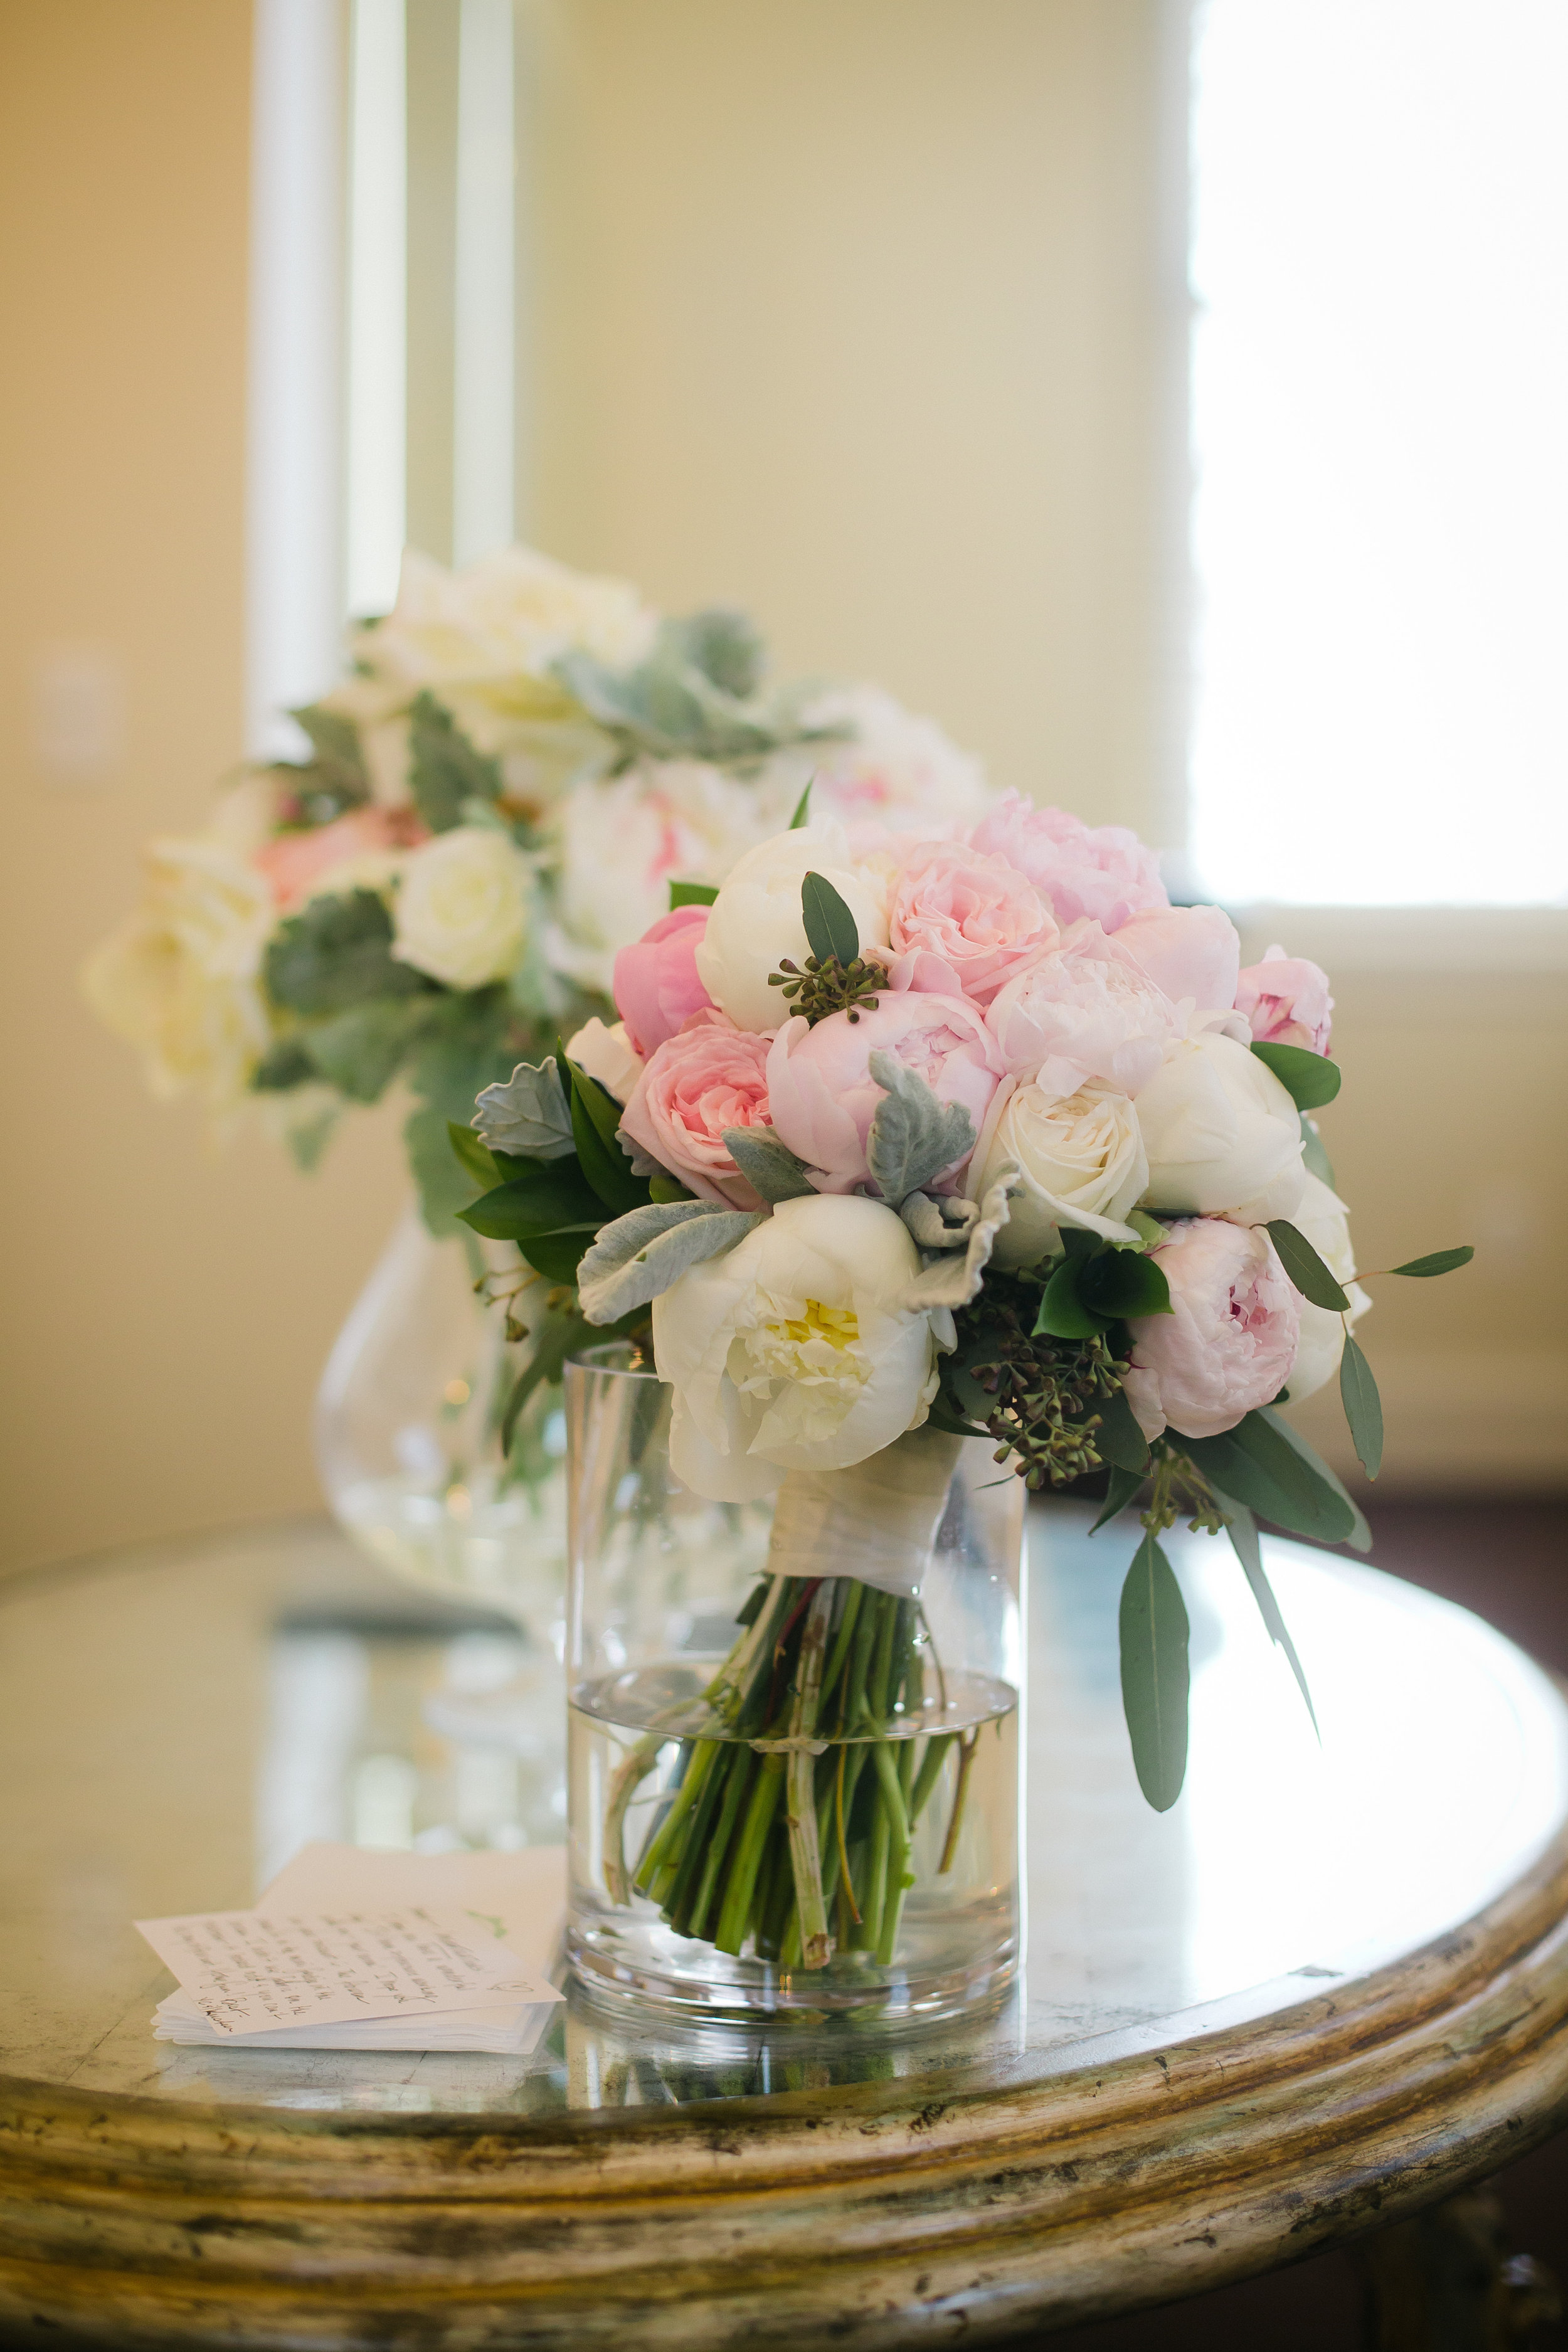 Bridal bouquet in pastels for Monastery Event Center wedding in Cincinnati.  Florals by Yellow Canary www.yellowcanaryonline.com